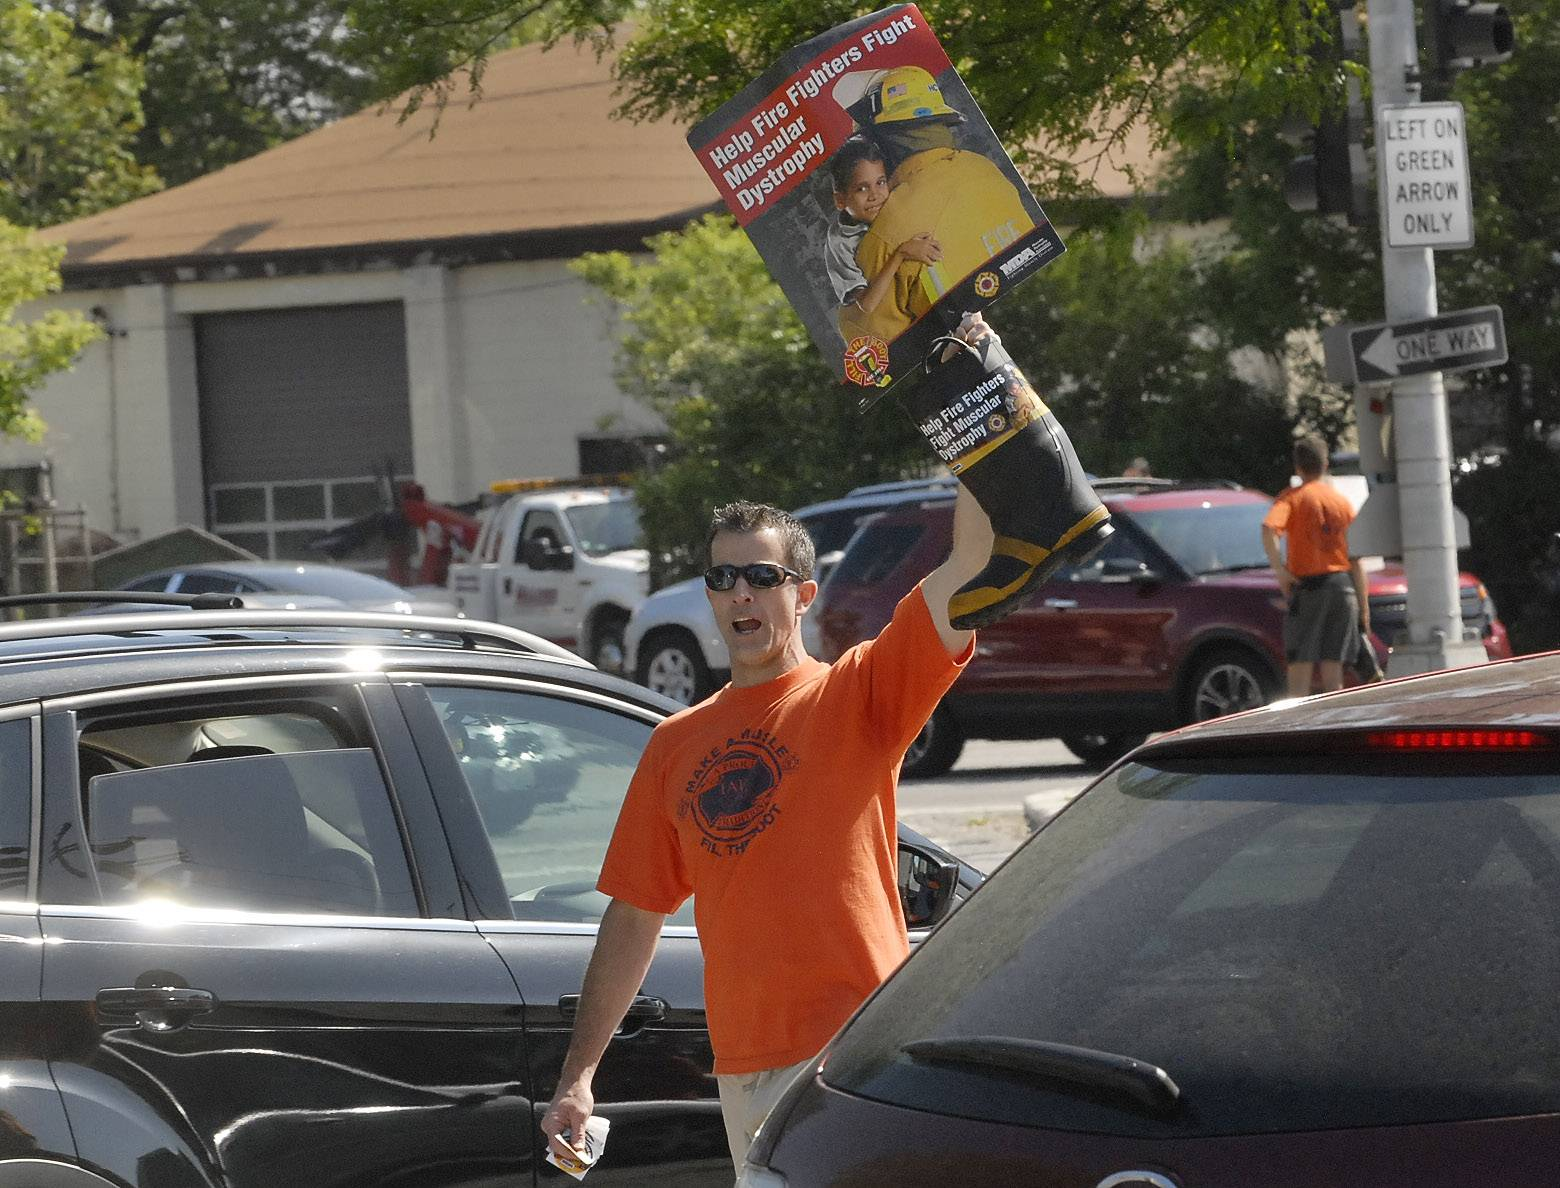 Ted Peterson works the intersection of Palatine Road and Arlington Heights Roads Friday during the Arlington Heights firefighters Fill the Boot campaign.